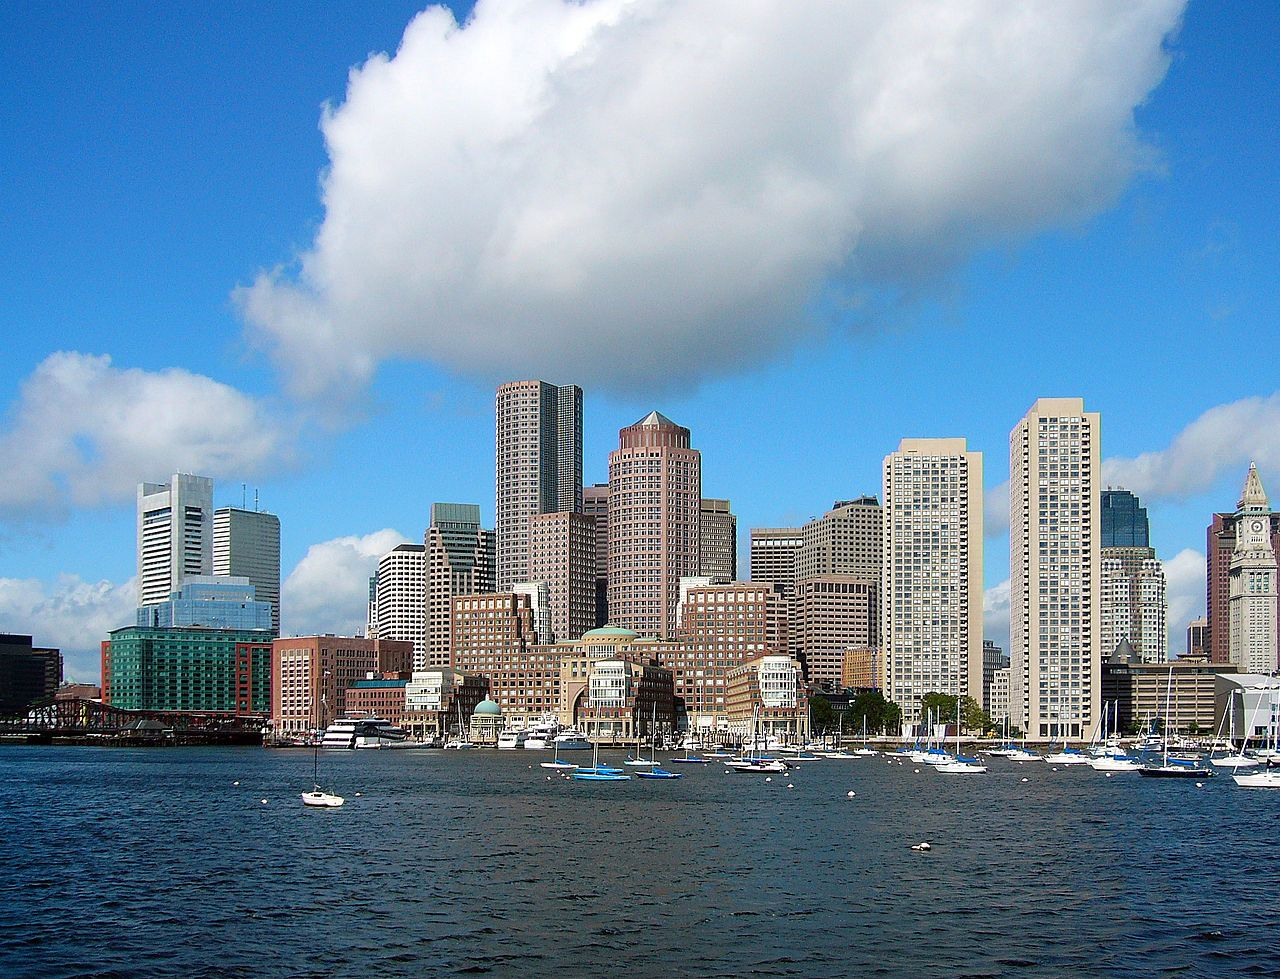 Boston_Financial_District_skyline.jpg